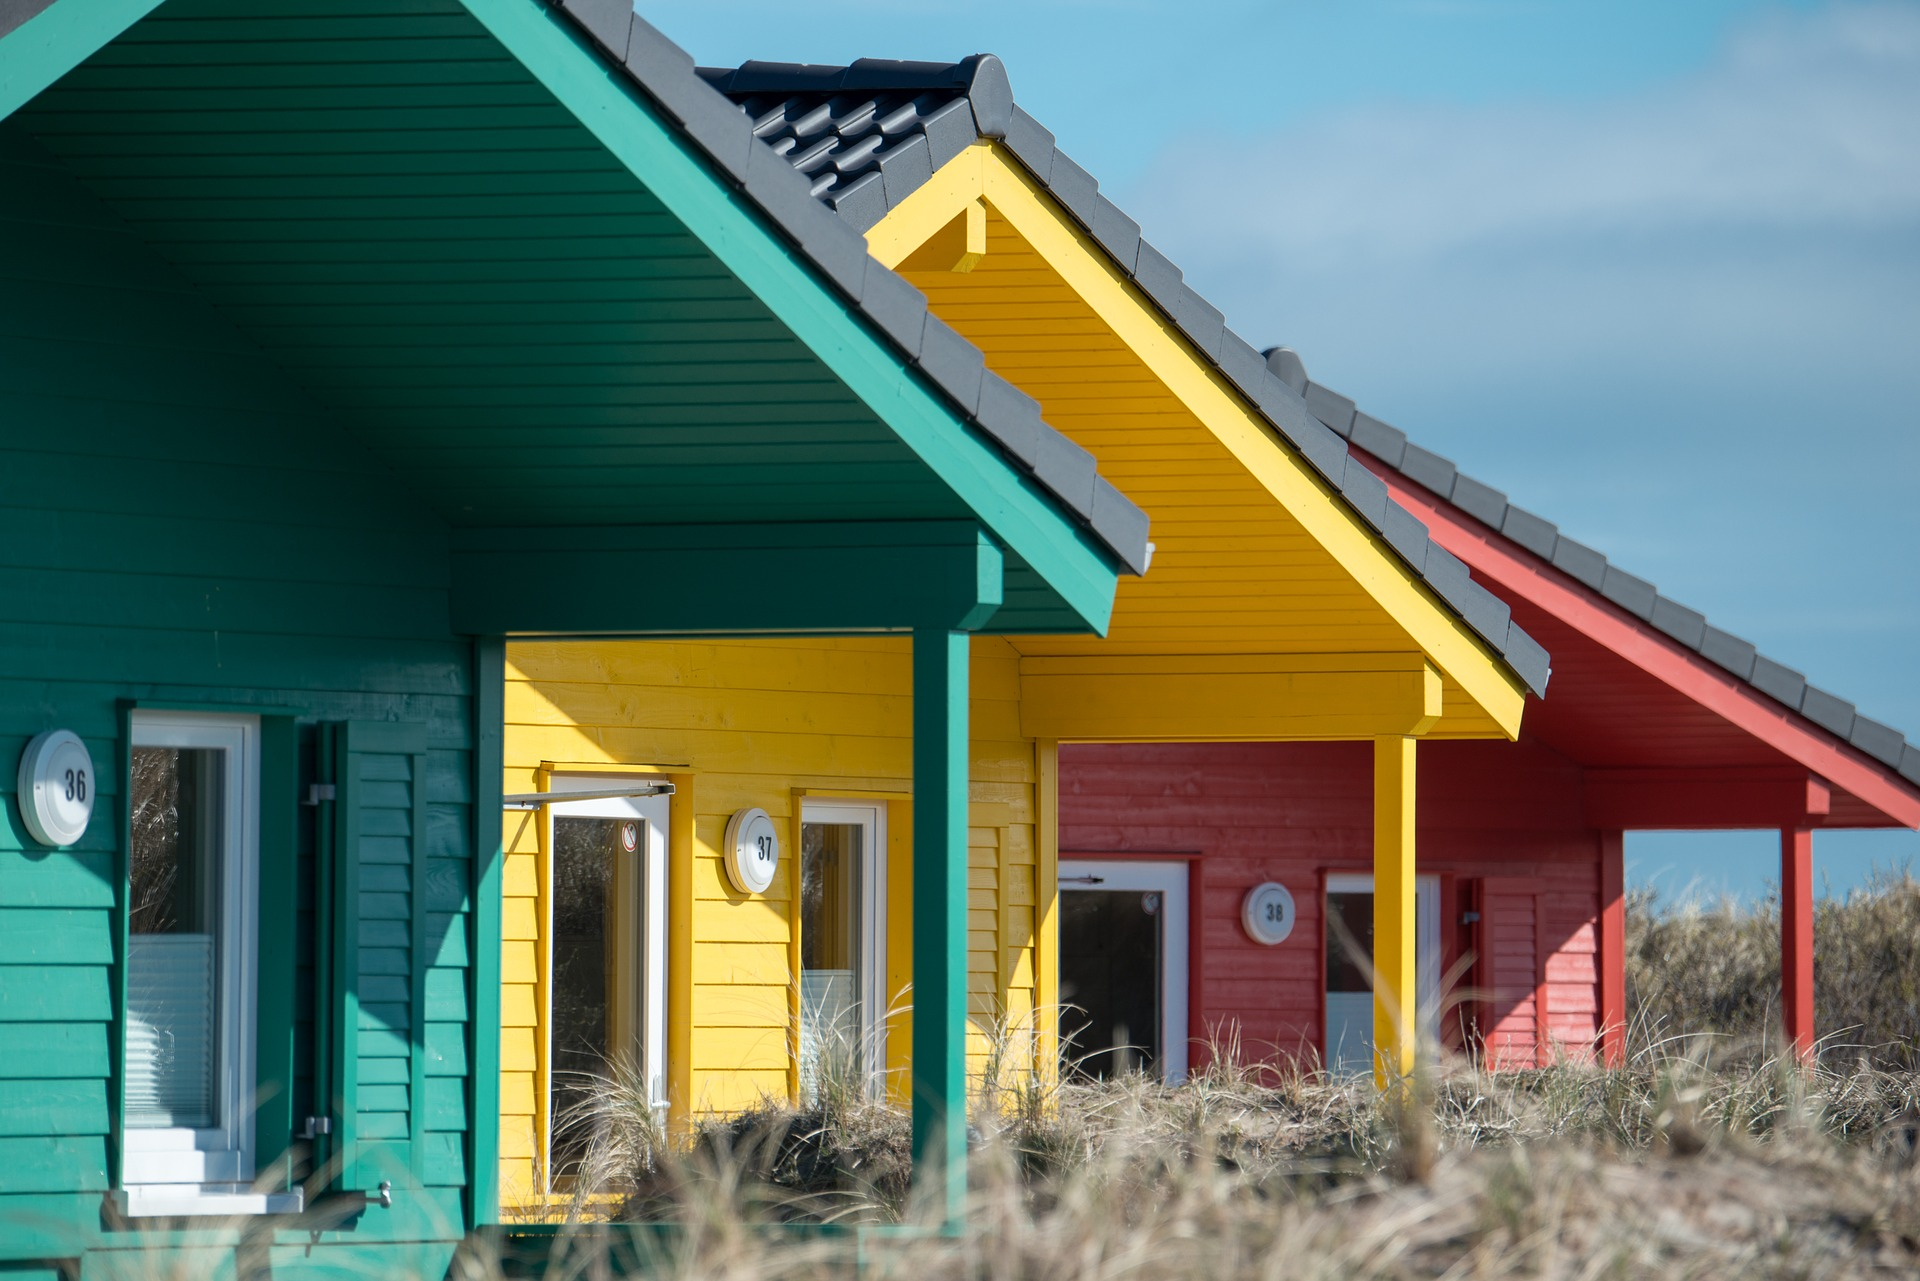 wooden-houses-2164726_1920